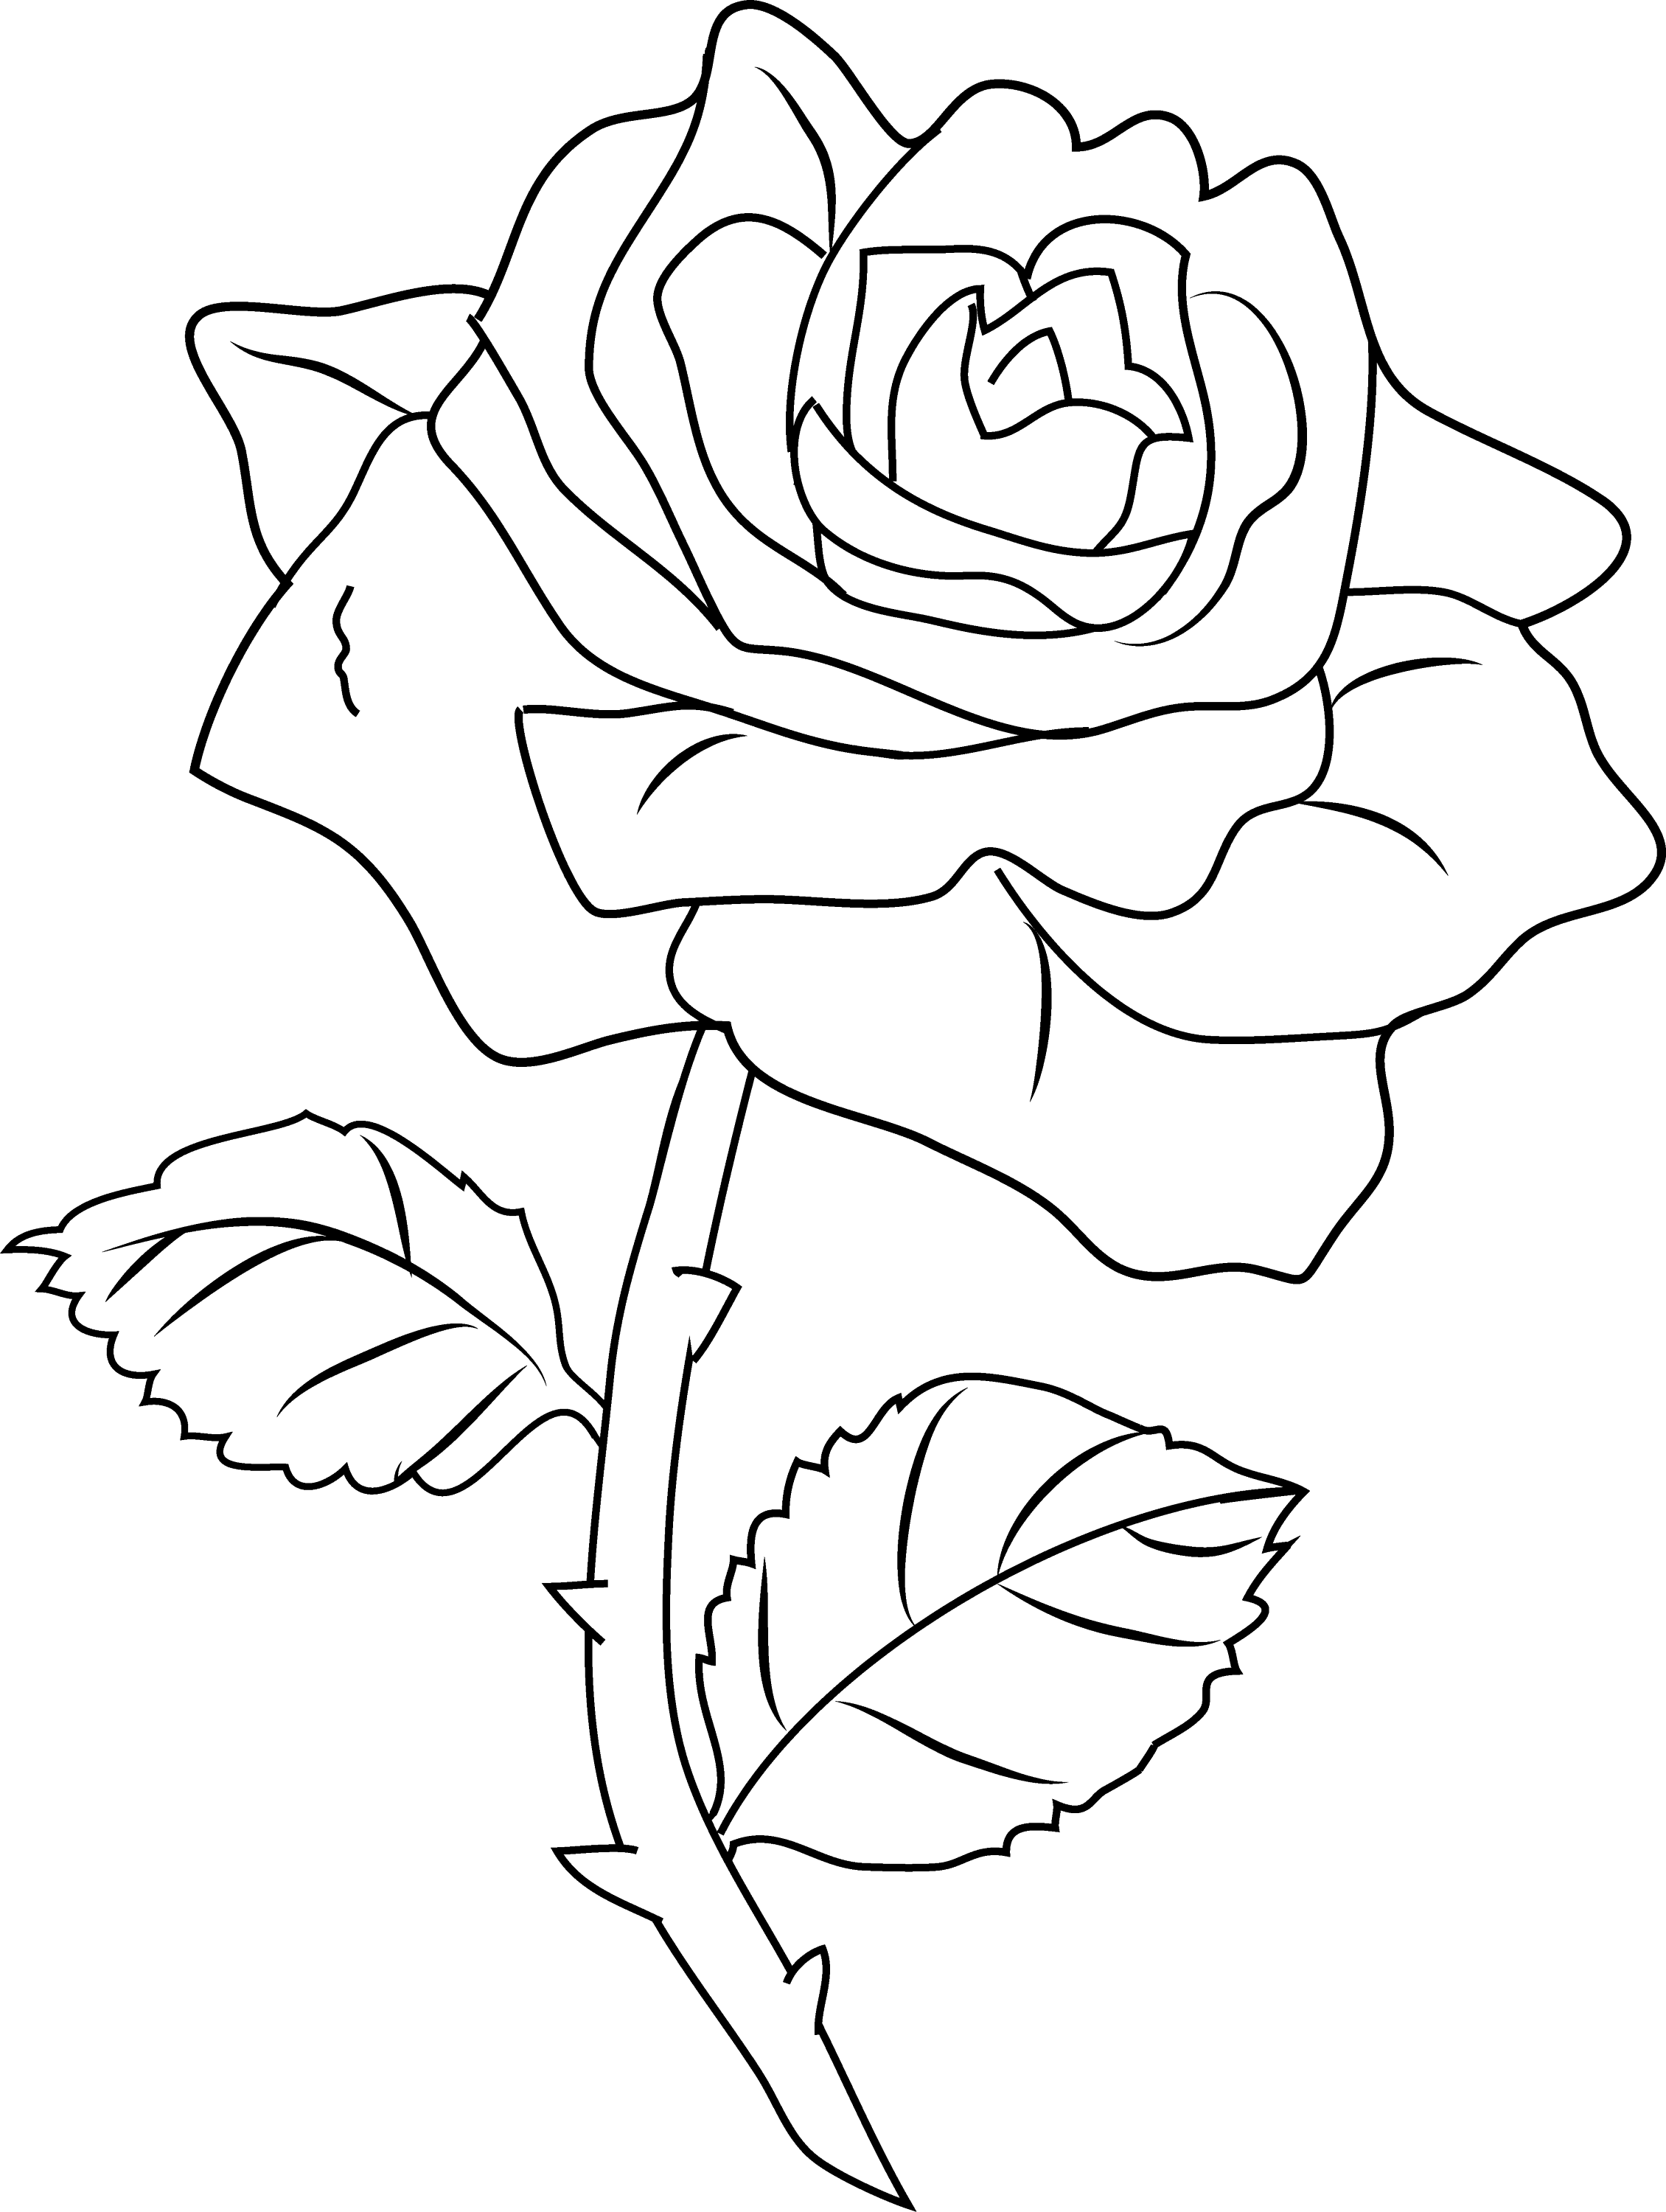 Line Art Rose : Knumathise rose black and white outline images